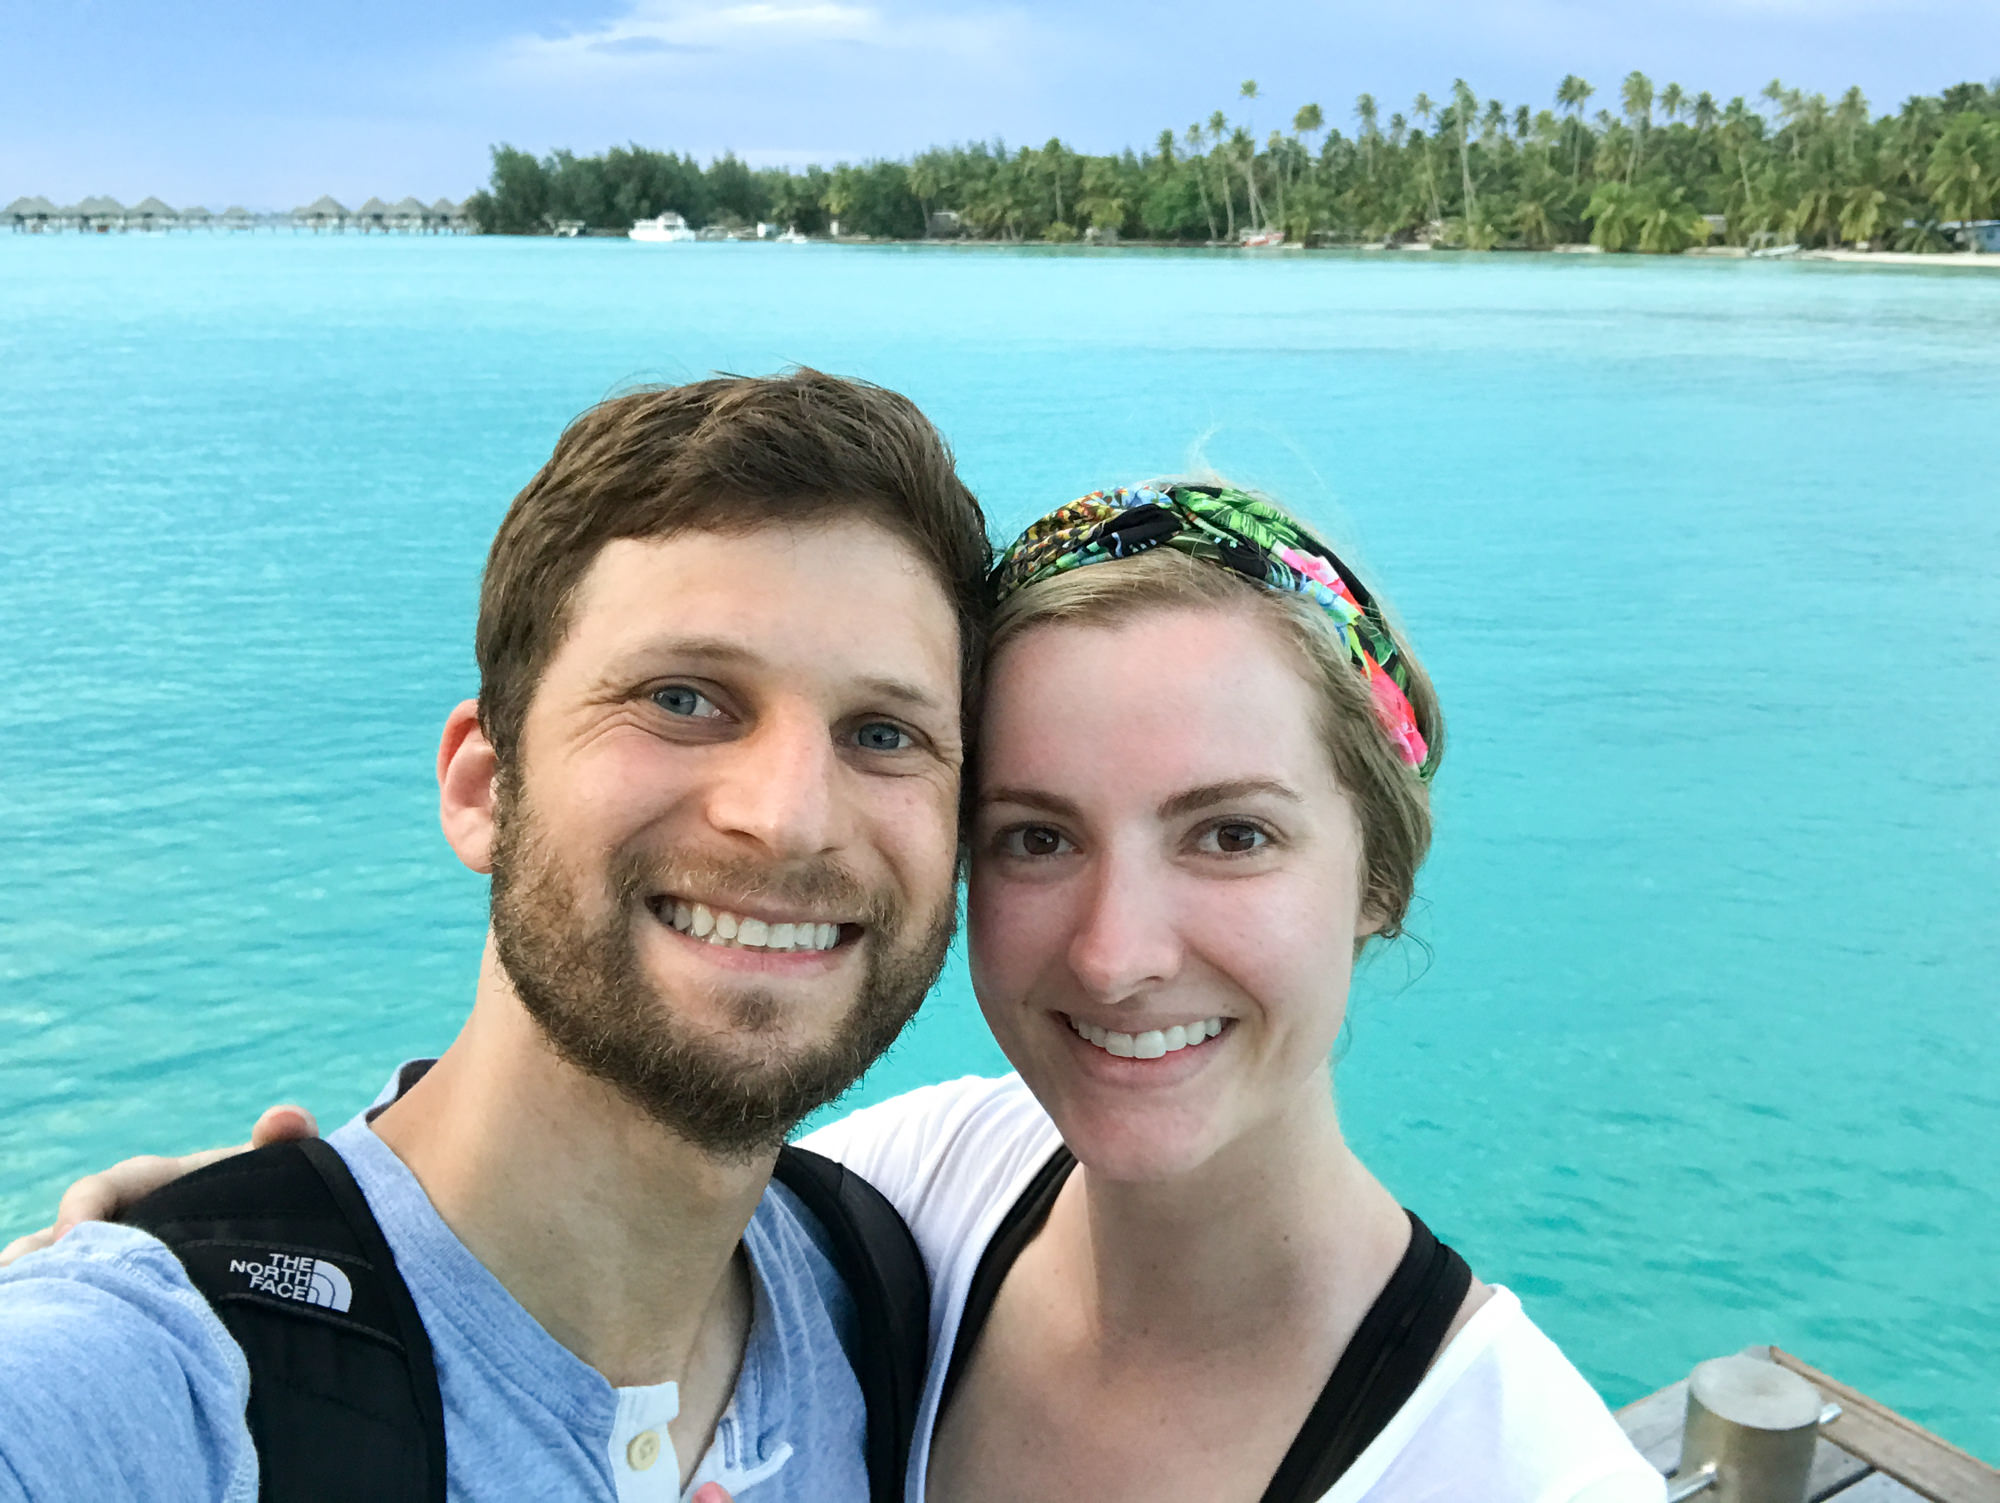 Our Honeymoon at InterContinental Bora Bora